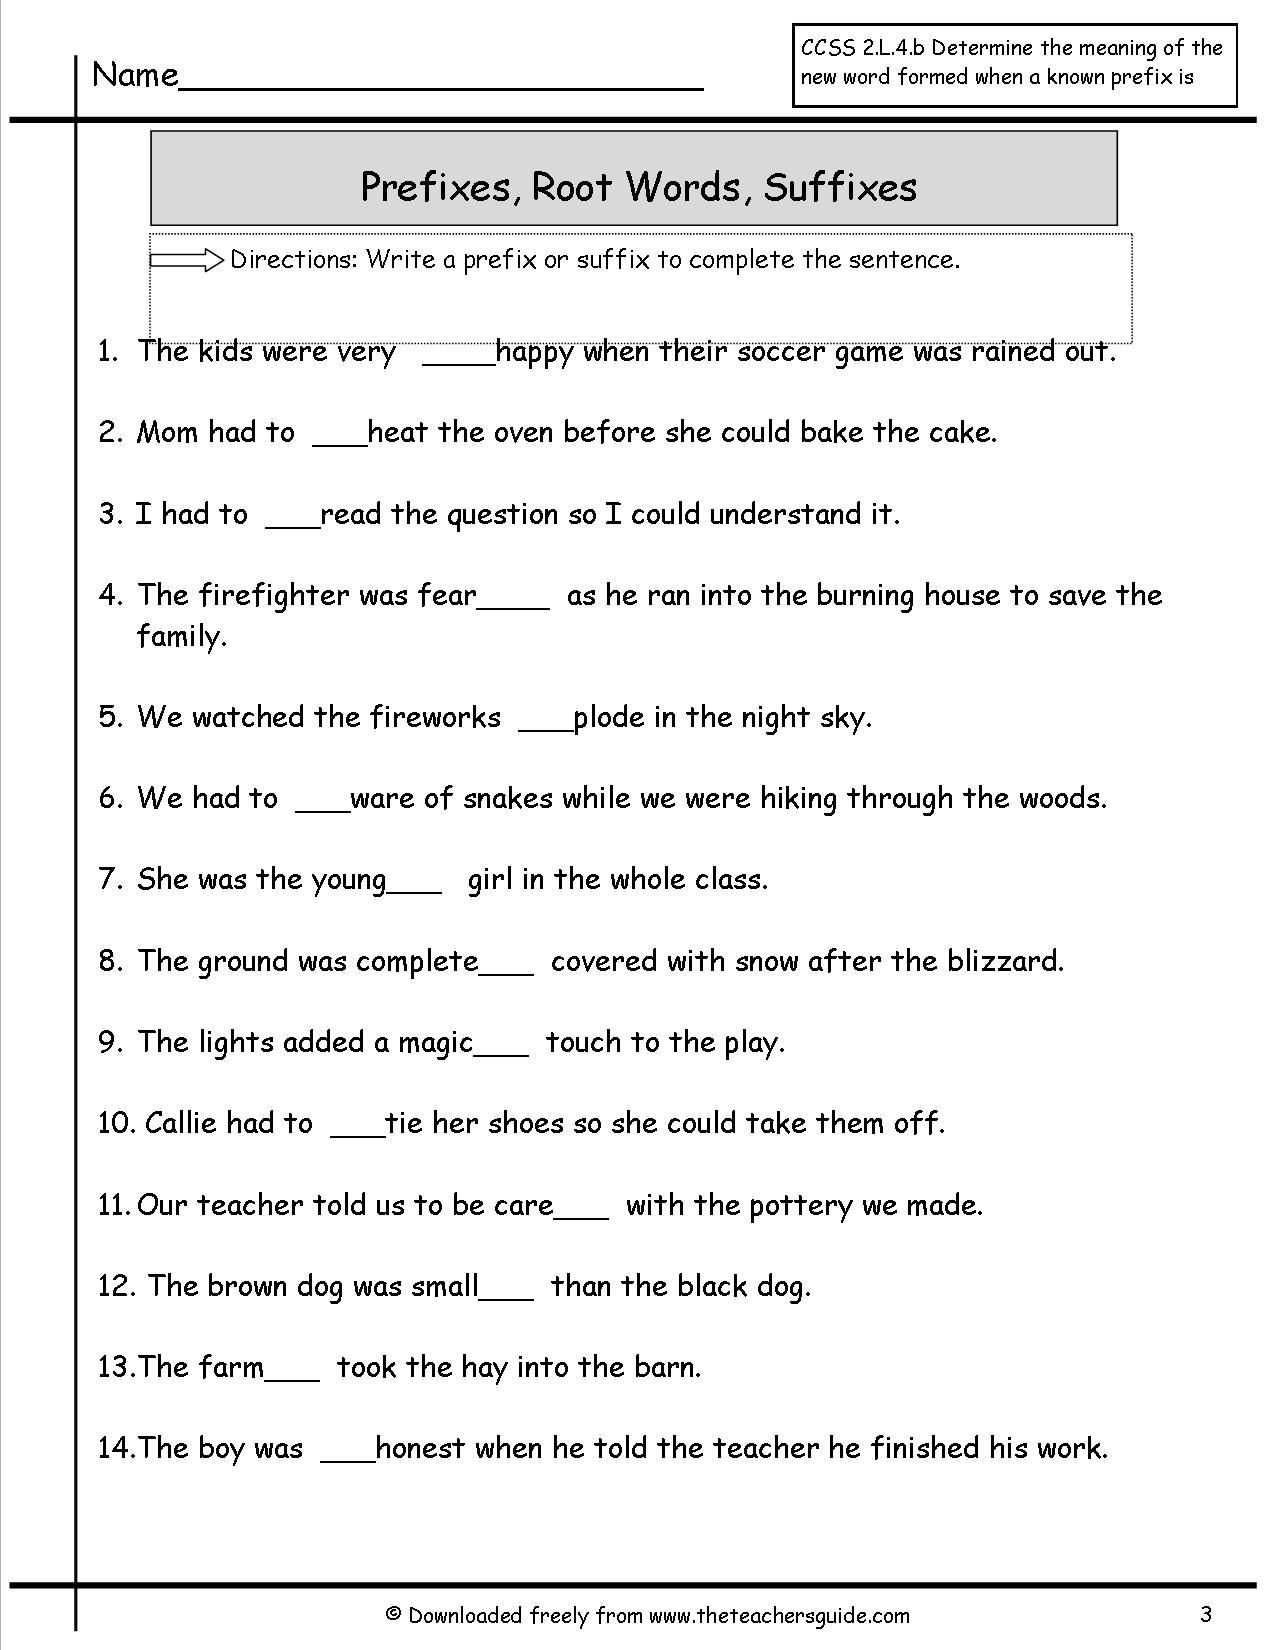 Suffix Worksheets 4th Grade 41 Innovative Prefix Worksheets for You S